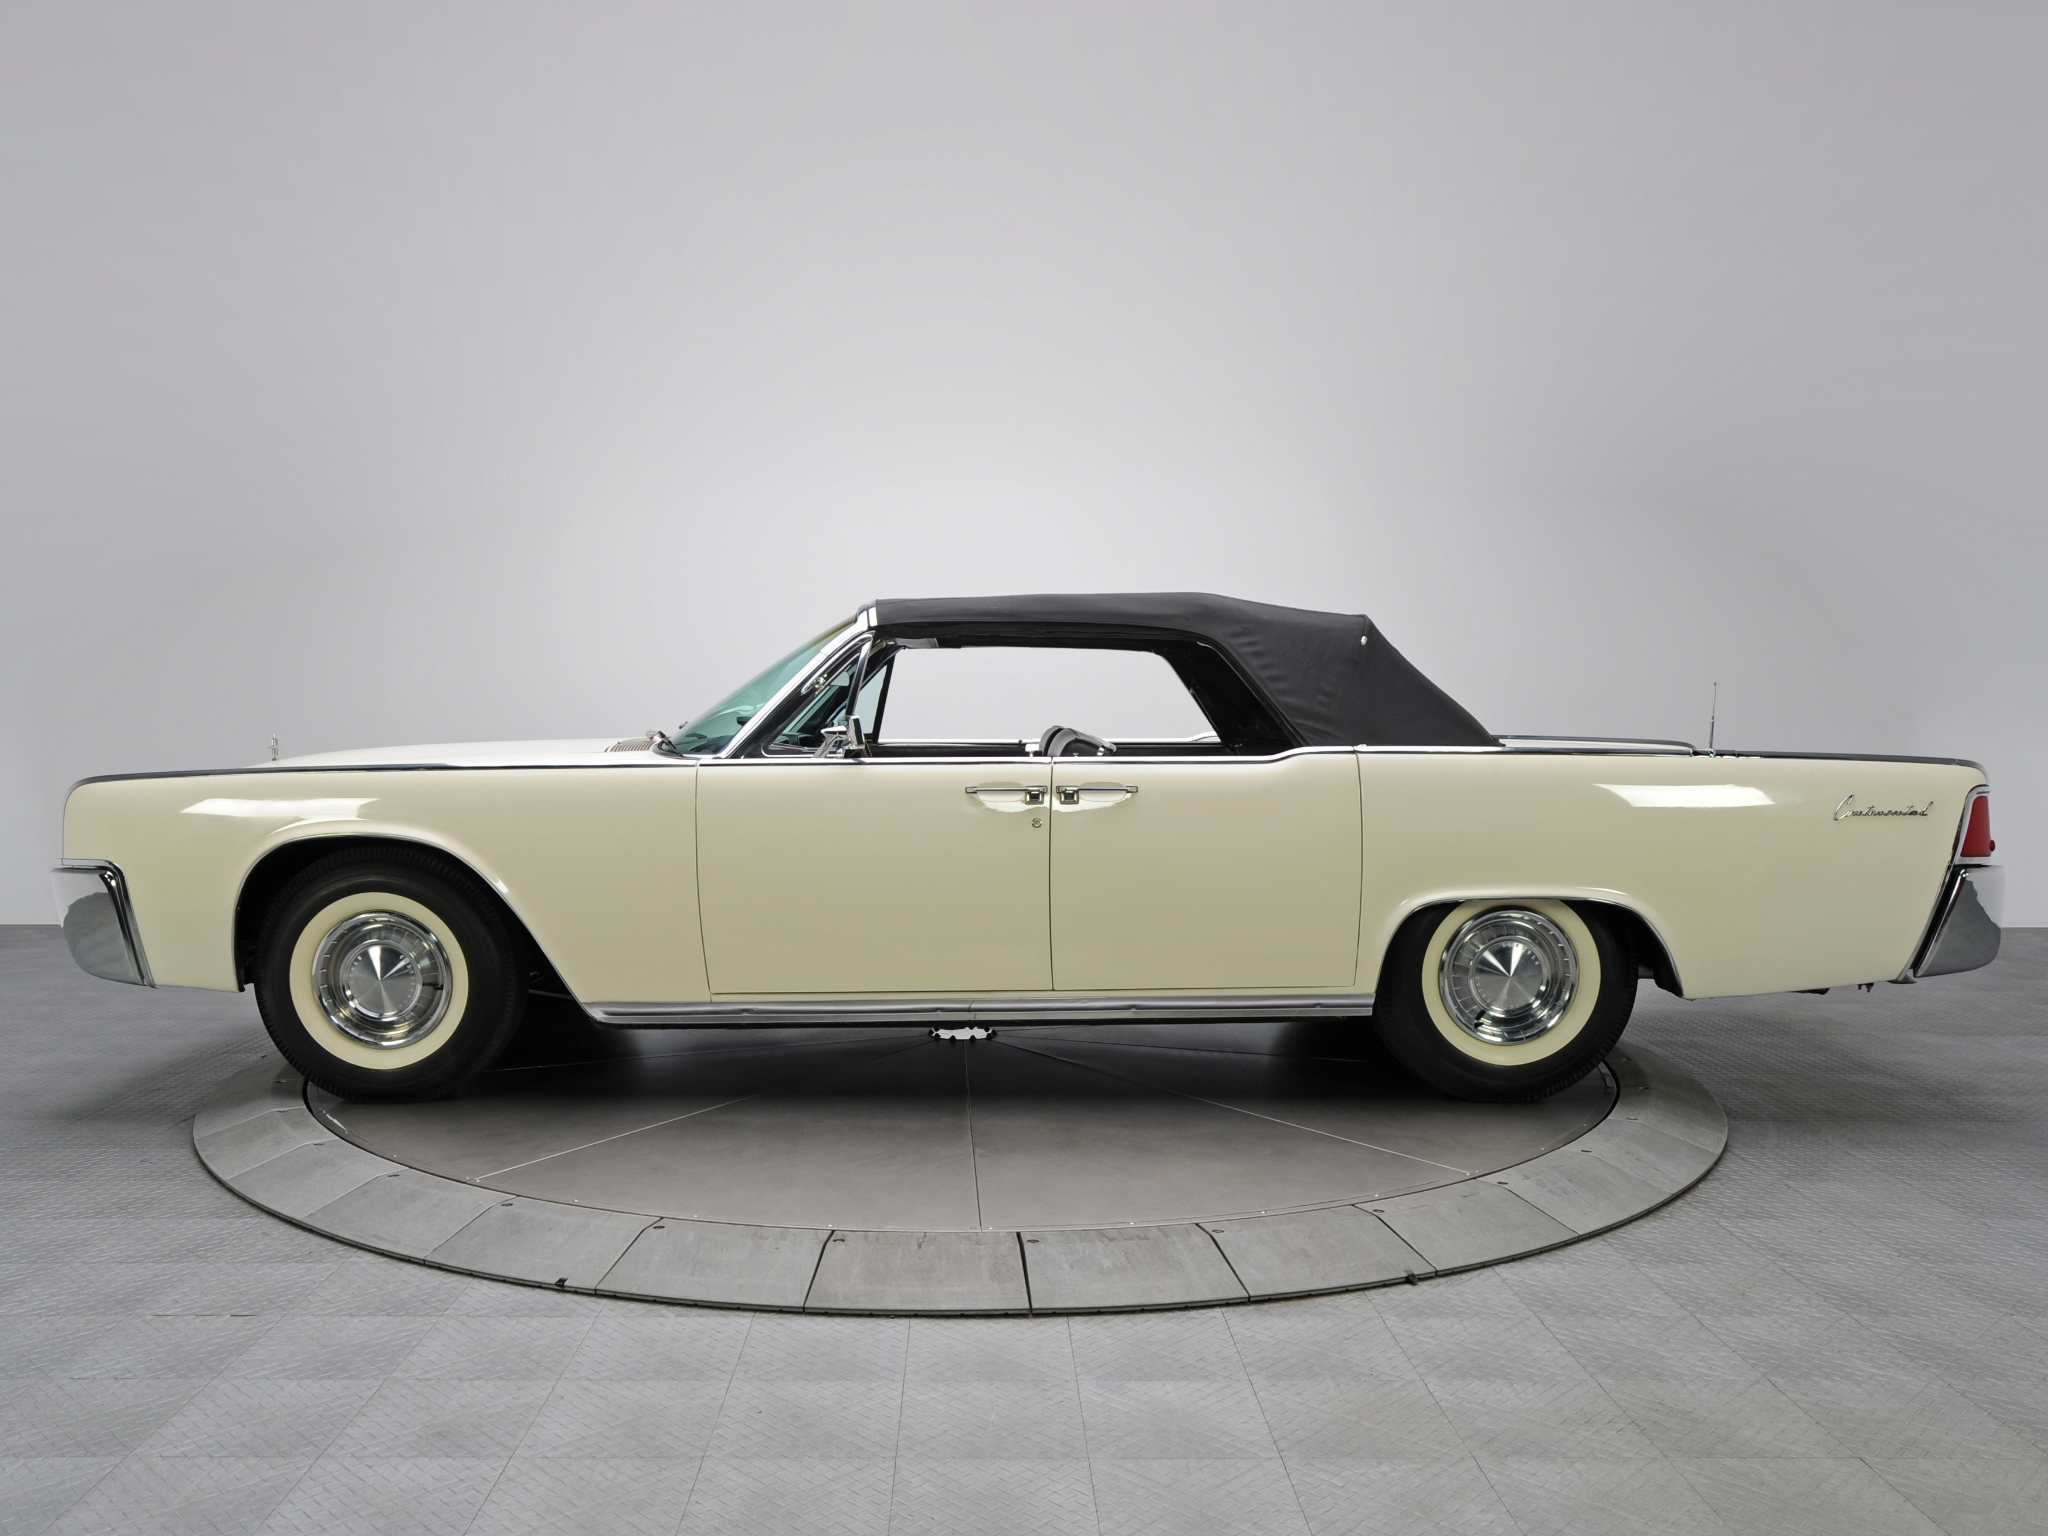 1962 Lincoln Continental Convertible Classic Luxury F Wallpaper Mark Iii Wiring Diagram 2048x1536 114423 Wallpaperup